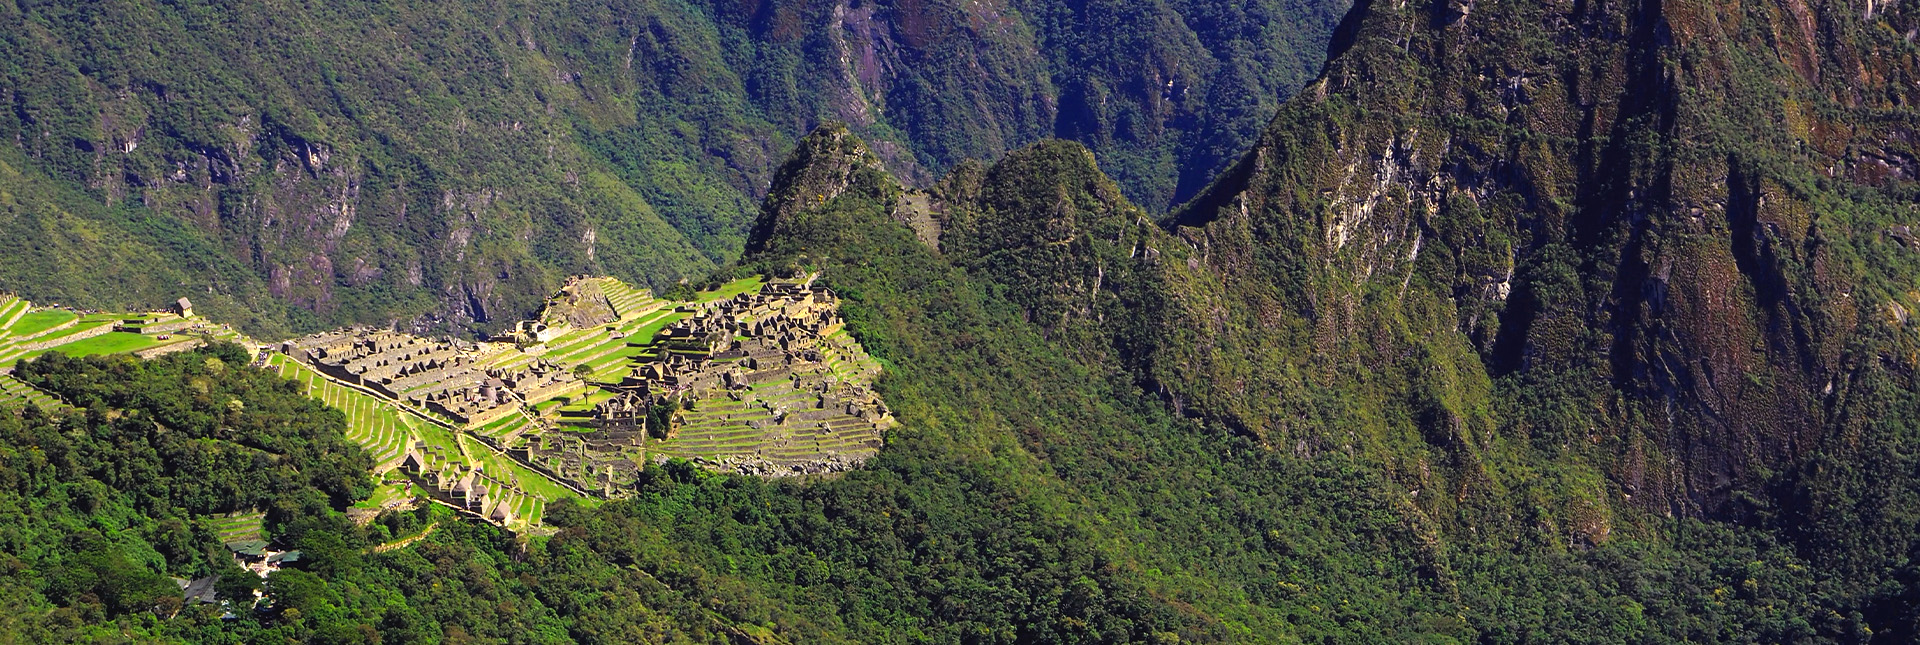 View of the Inca Ruins from a distance